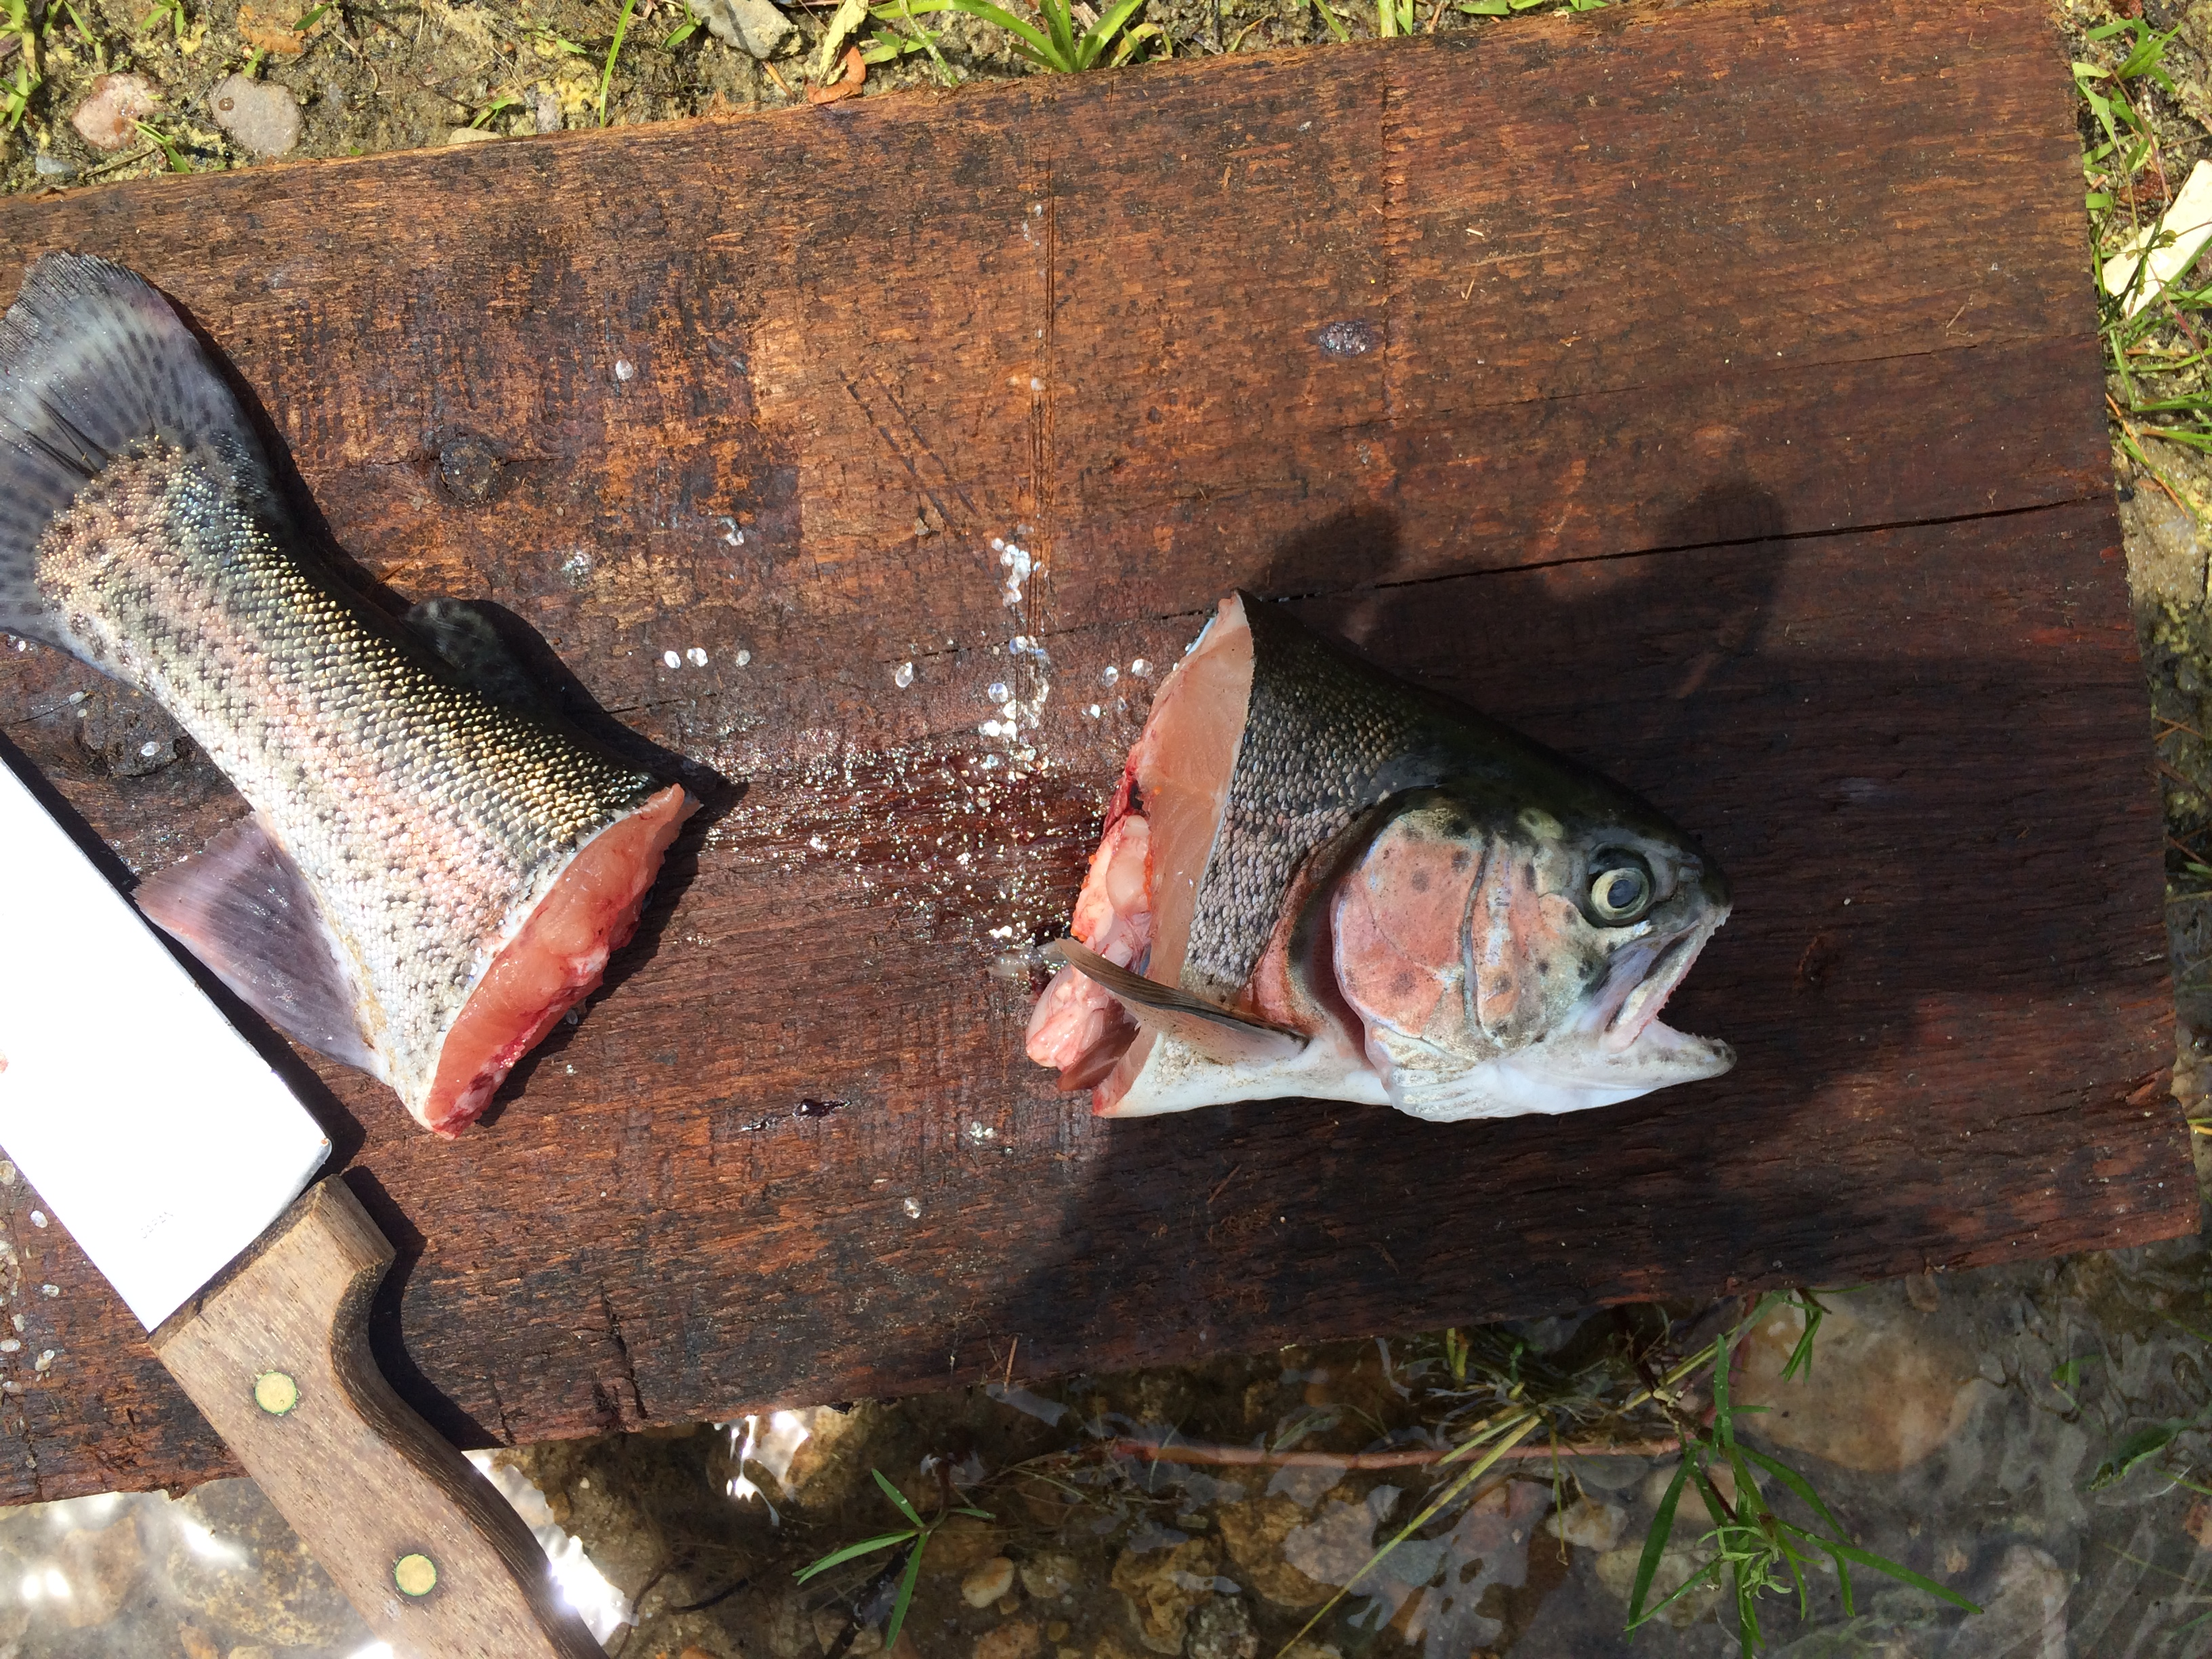 Rainbow trout from Fearing Pond in Myles Standish State Forest